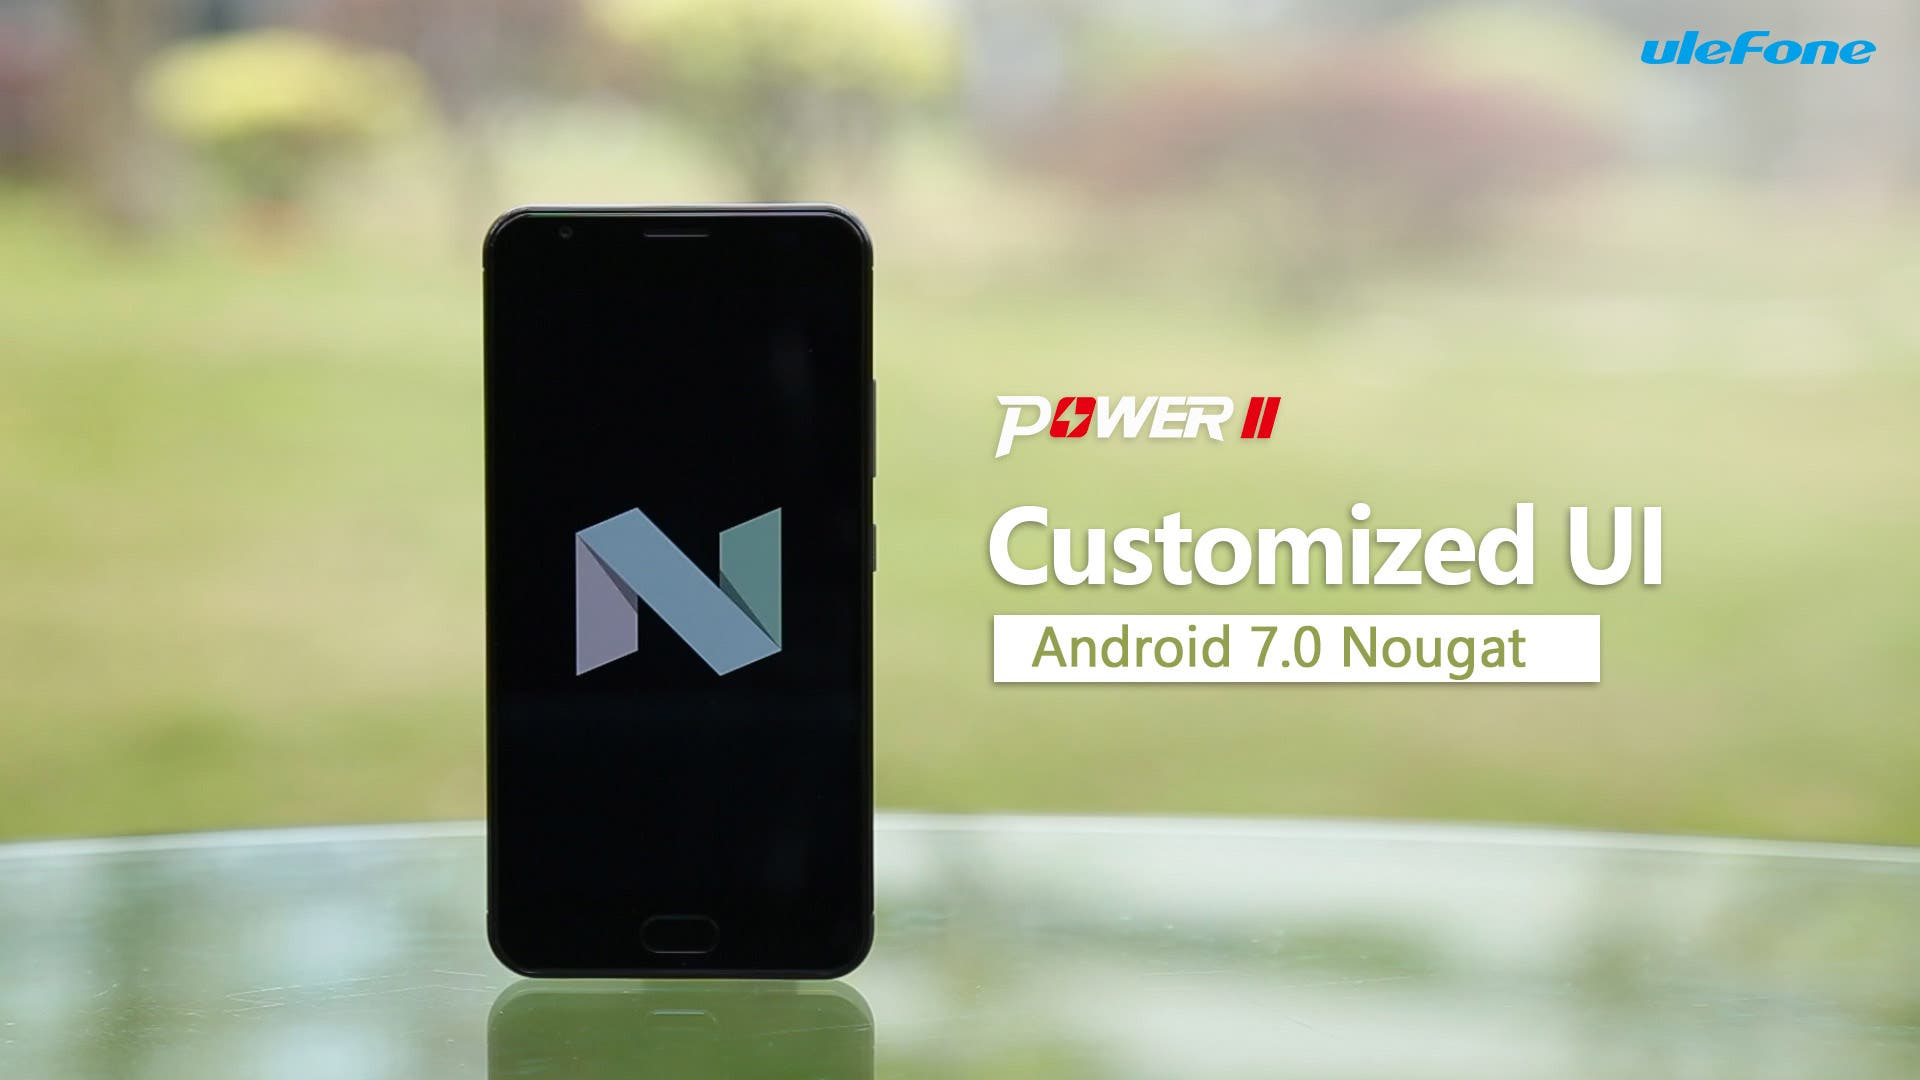 Ulefone Power 2 Android 7.0 Nougat